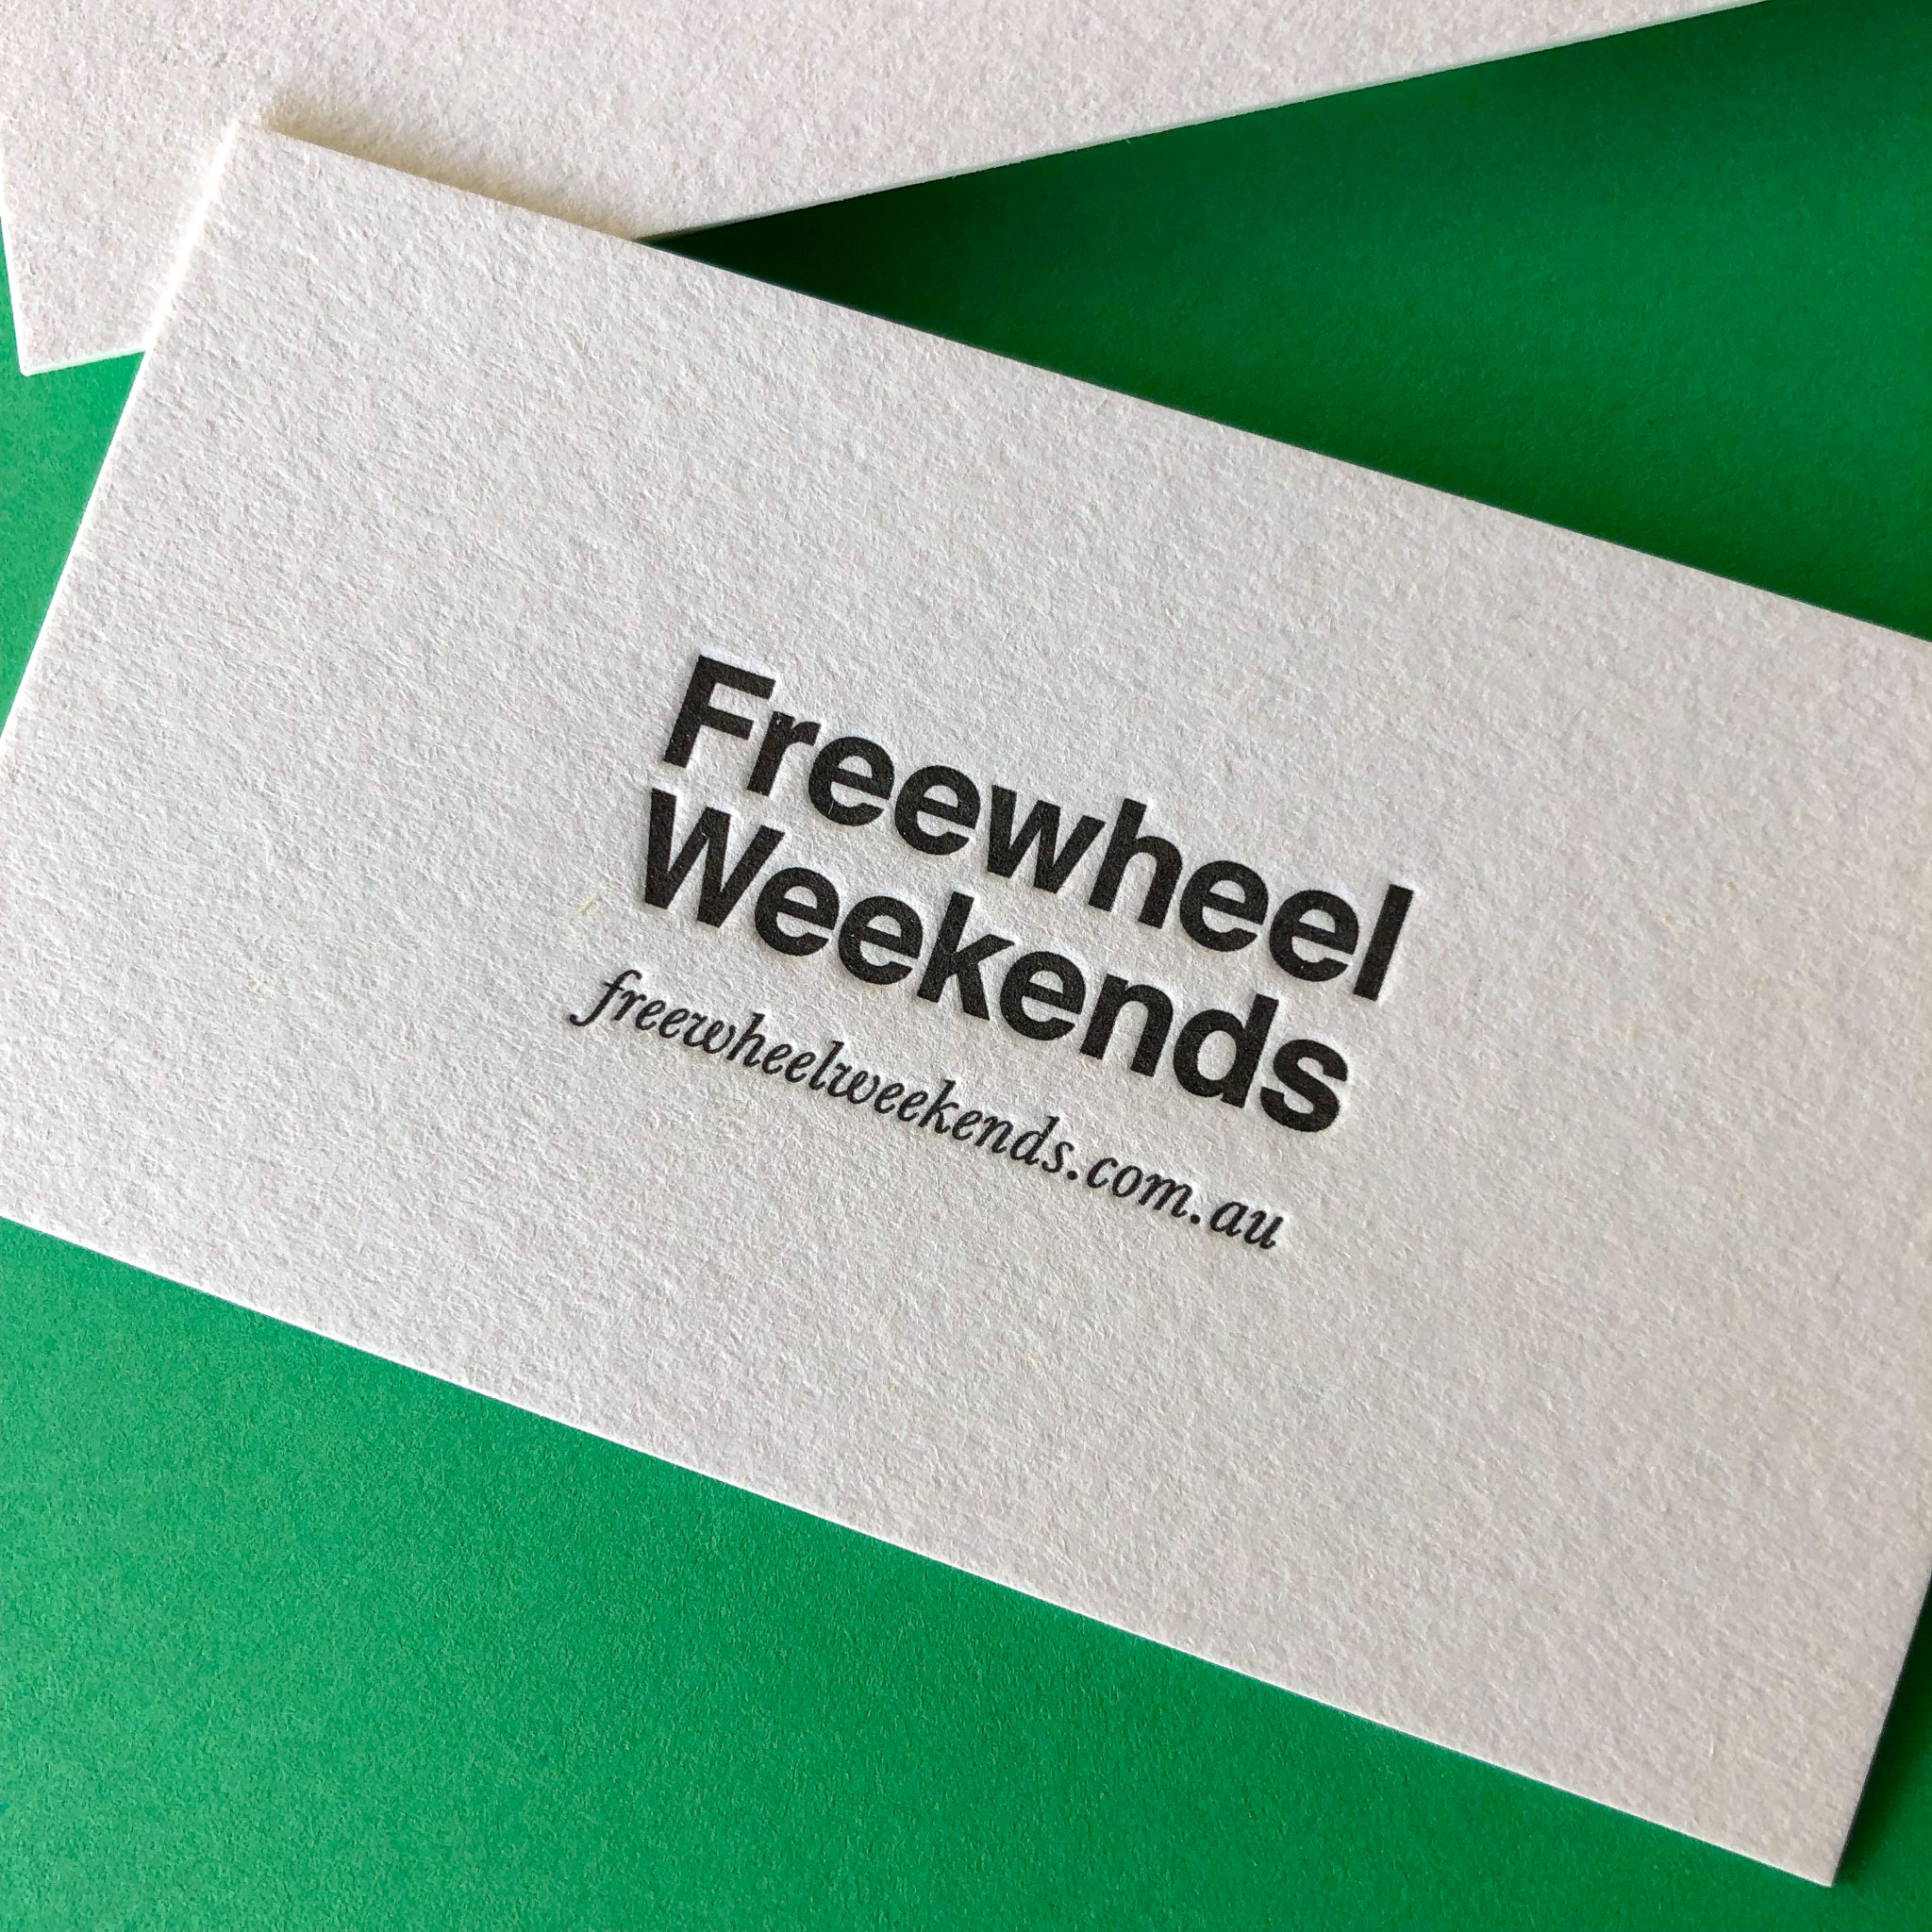 Letterpress standard business cards for Freewheel Weekends on Stephen 2